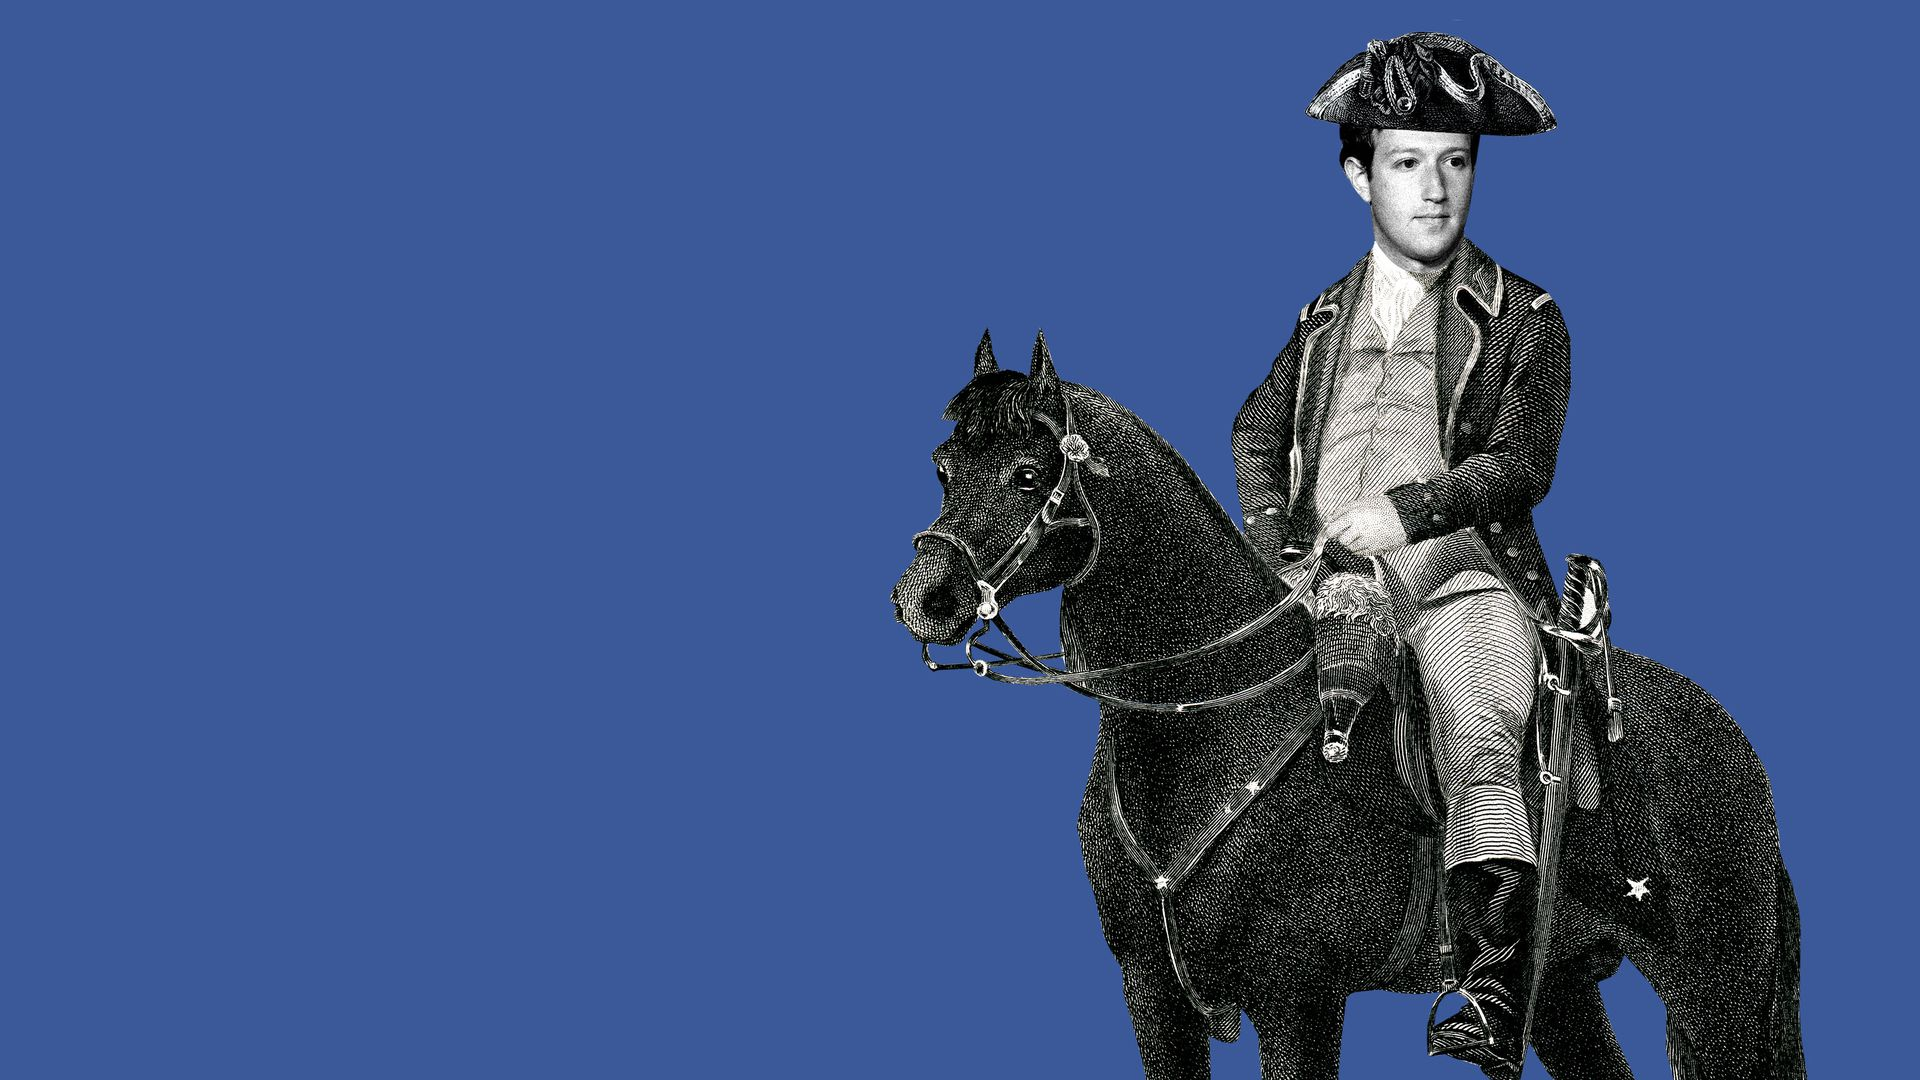 Illustration of Mark Zuckerberg on a horse with tricorn hat